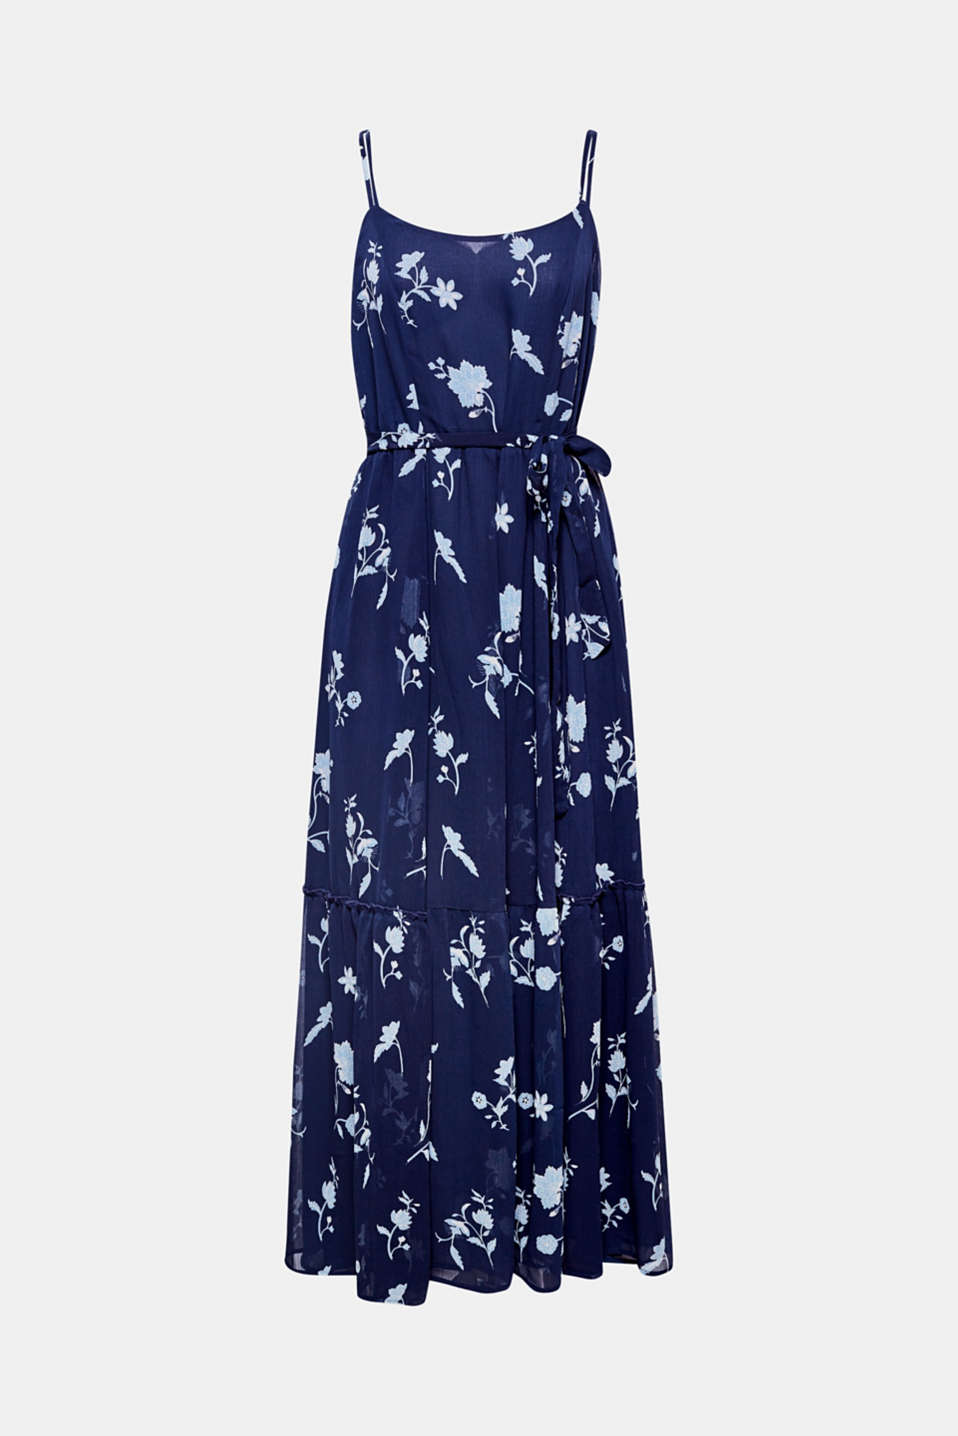 Ooh la la: this maxi dress made of soft, crushed chiffon featuring a floral print, adjustable spaghetti straps, a tie-around belt and swirling hem frill has got it all when it comes to fantastic fashion details!